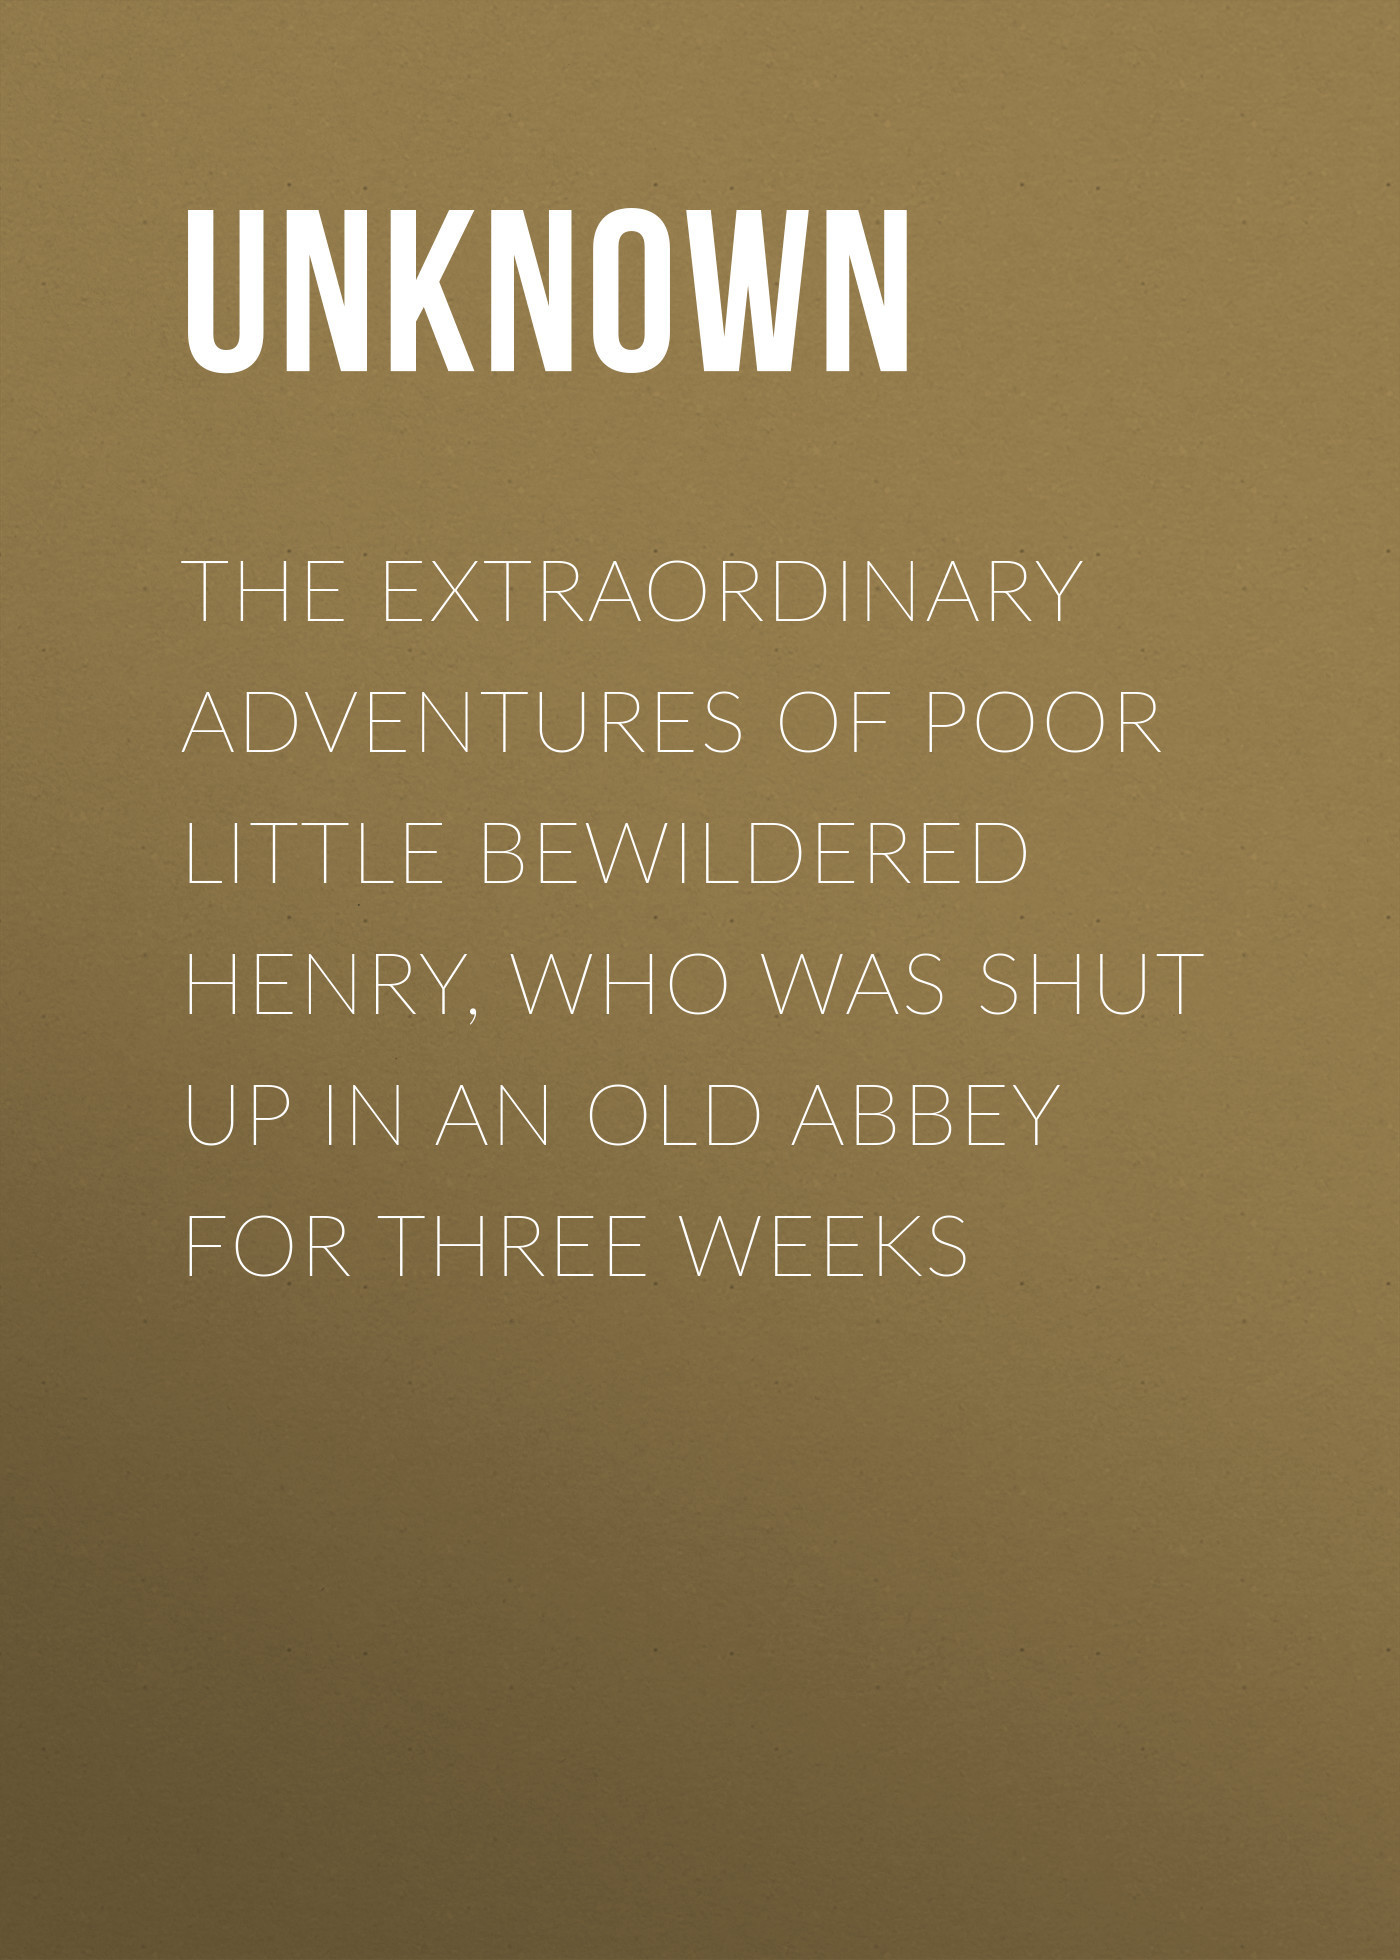 Unknown The Extraordinary Adventures of Poor Little Bewildered Henry, Who was shut up in an Old Abbey for Three Weeks